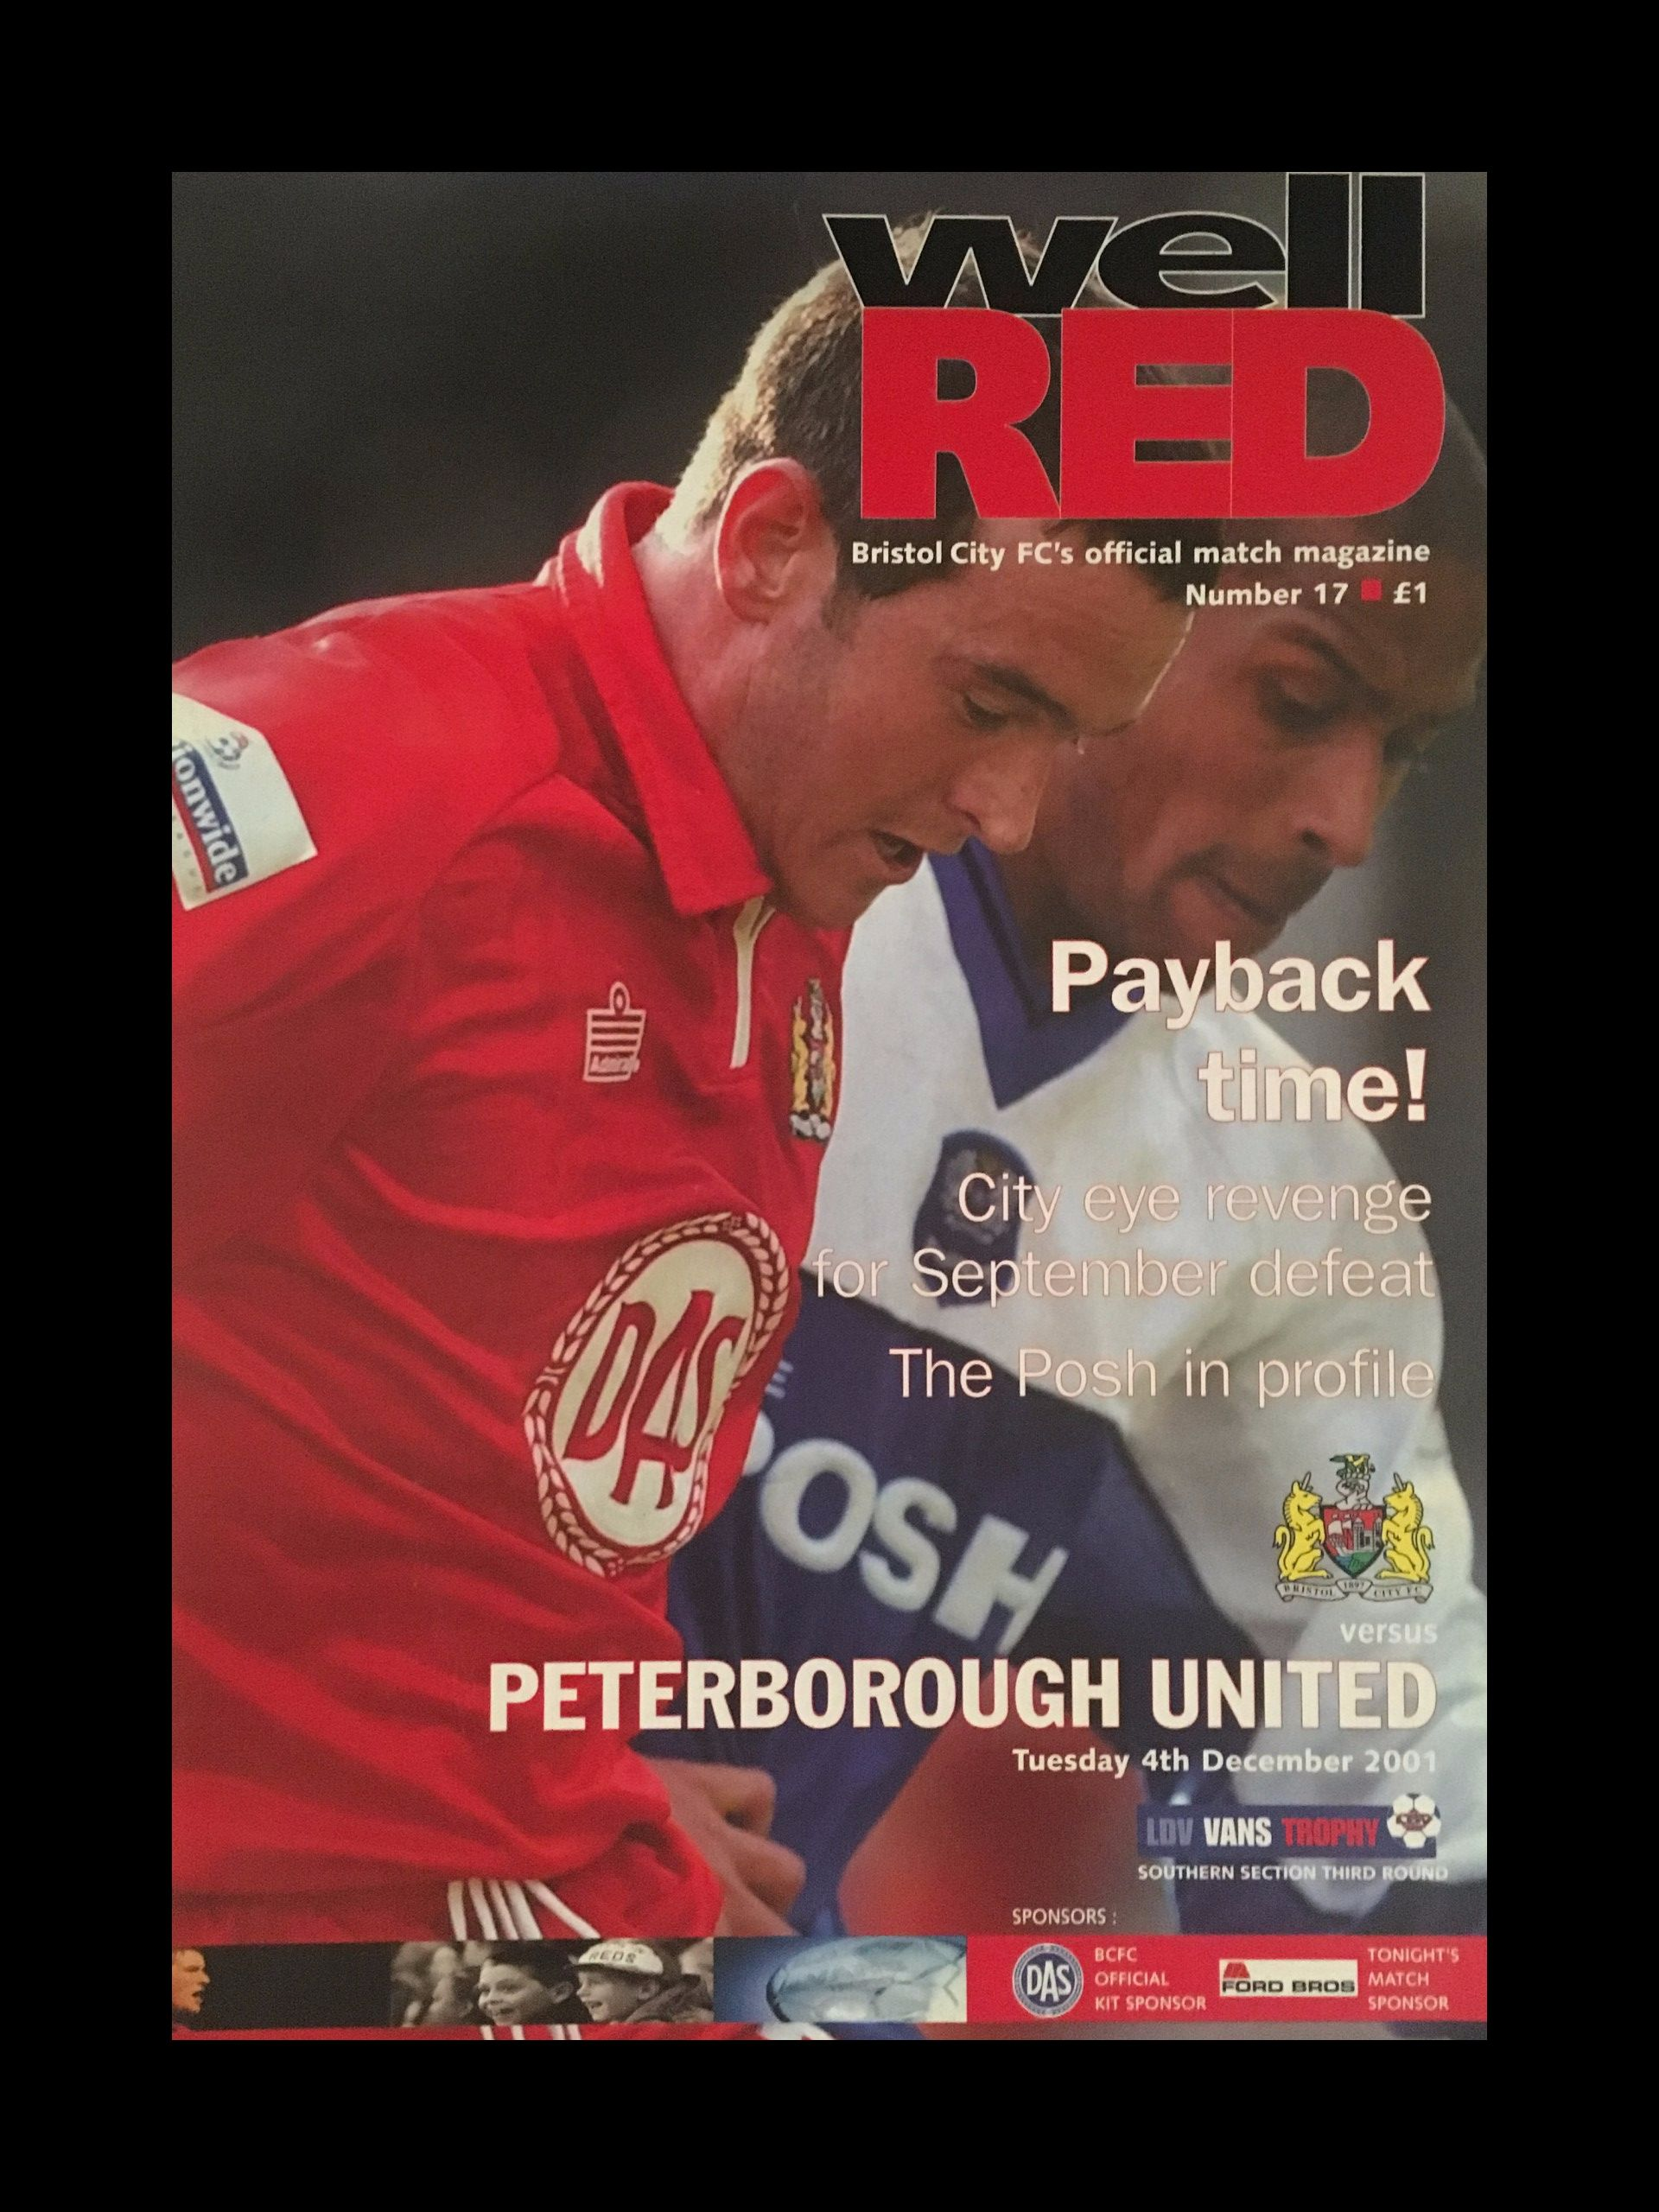 Bristol City v Peterborough United 04-12-2001 Programme